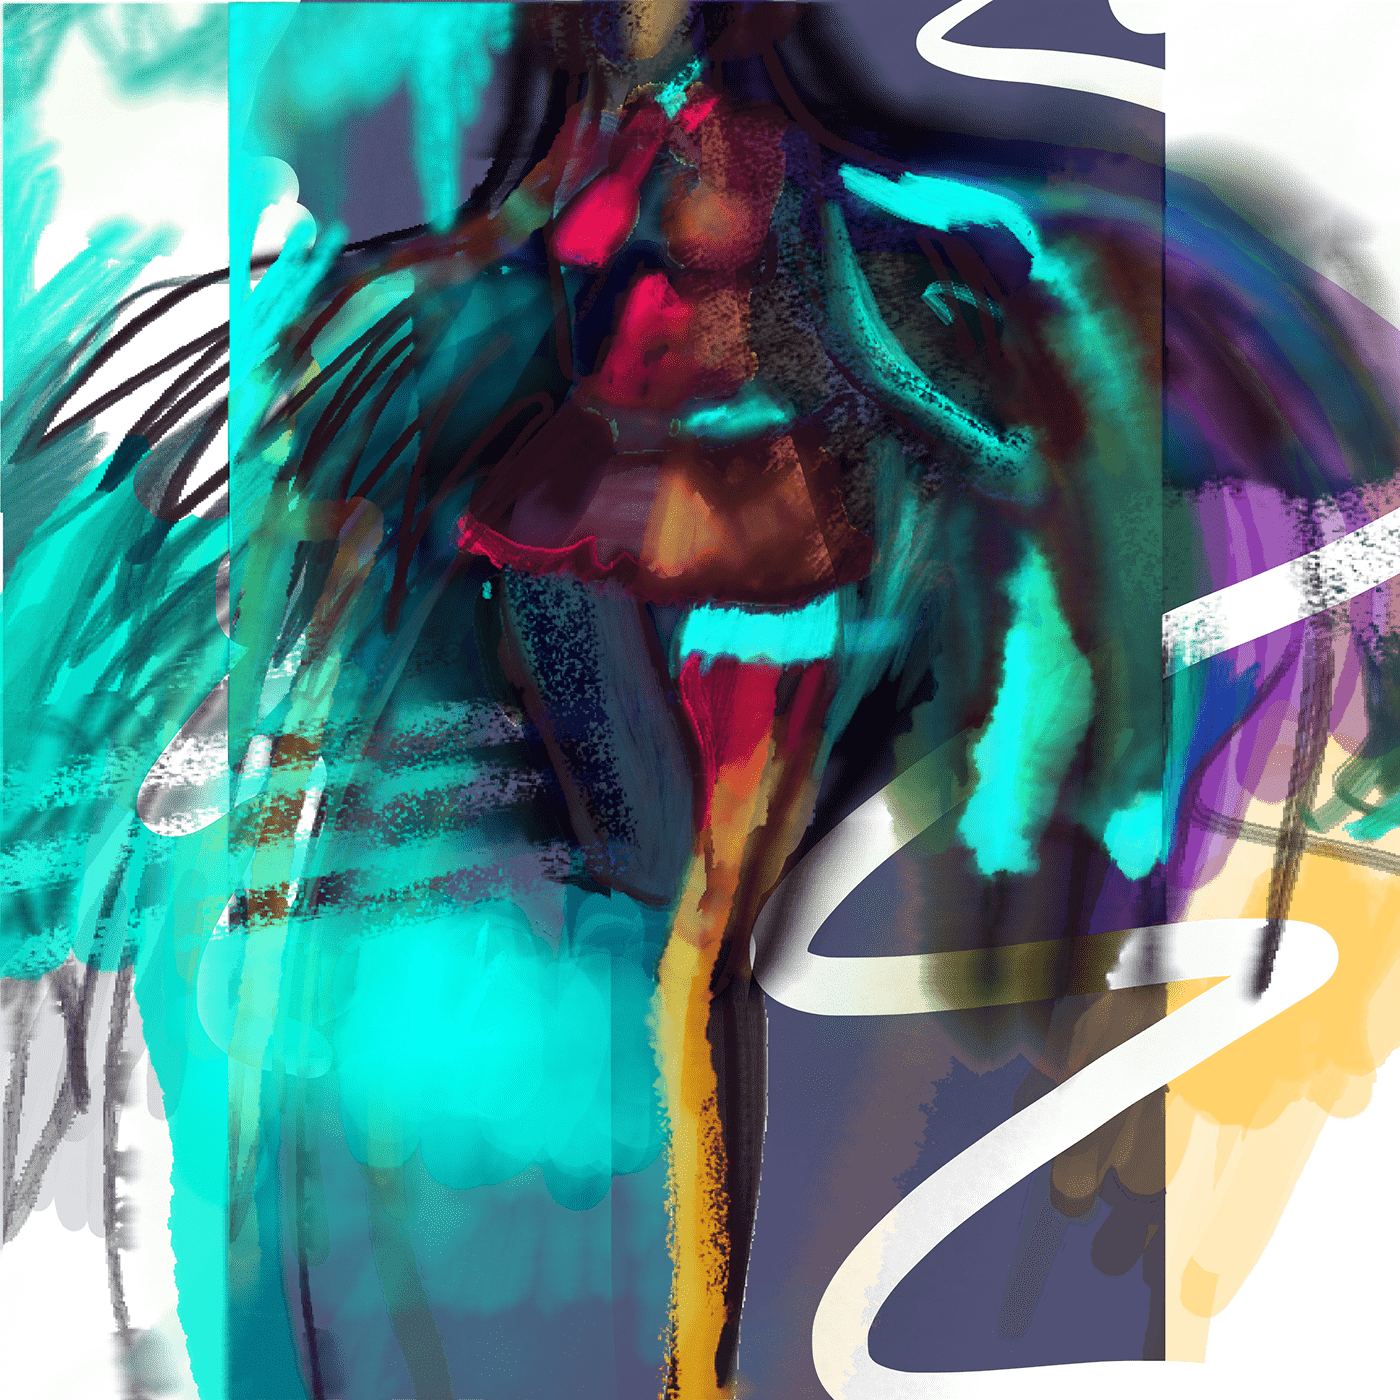 abstract angel ask AT bird blessed blue body brush bw colour could creative cyan deep draw entrust female Fly Good harajuku hips lavender lillies lines loved magenta questions rich saved simple sketch stroke those to watching whom wings You yourself